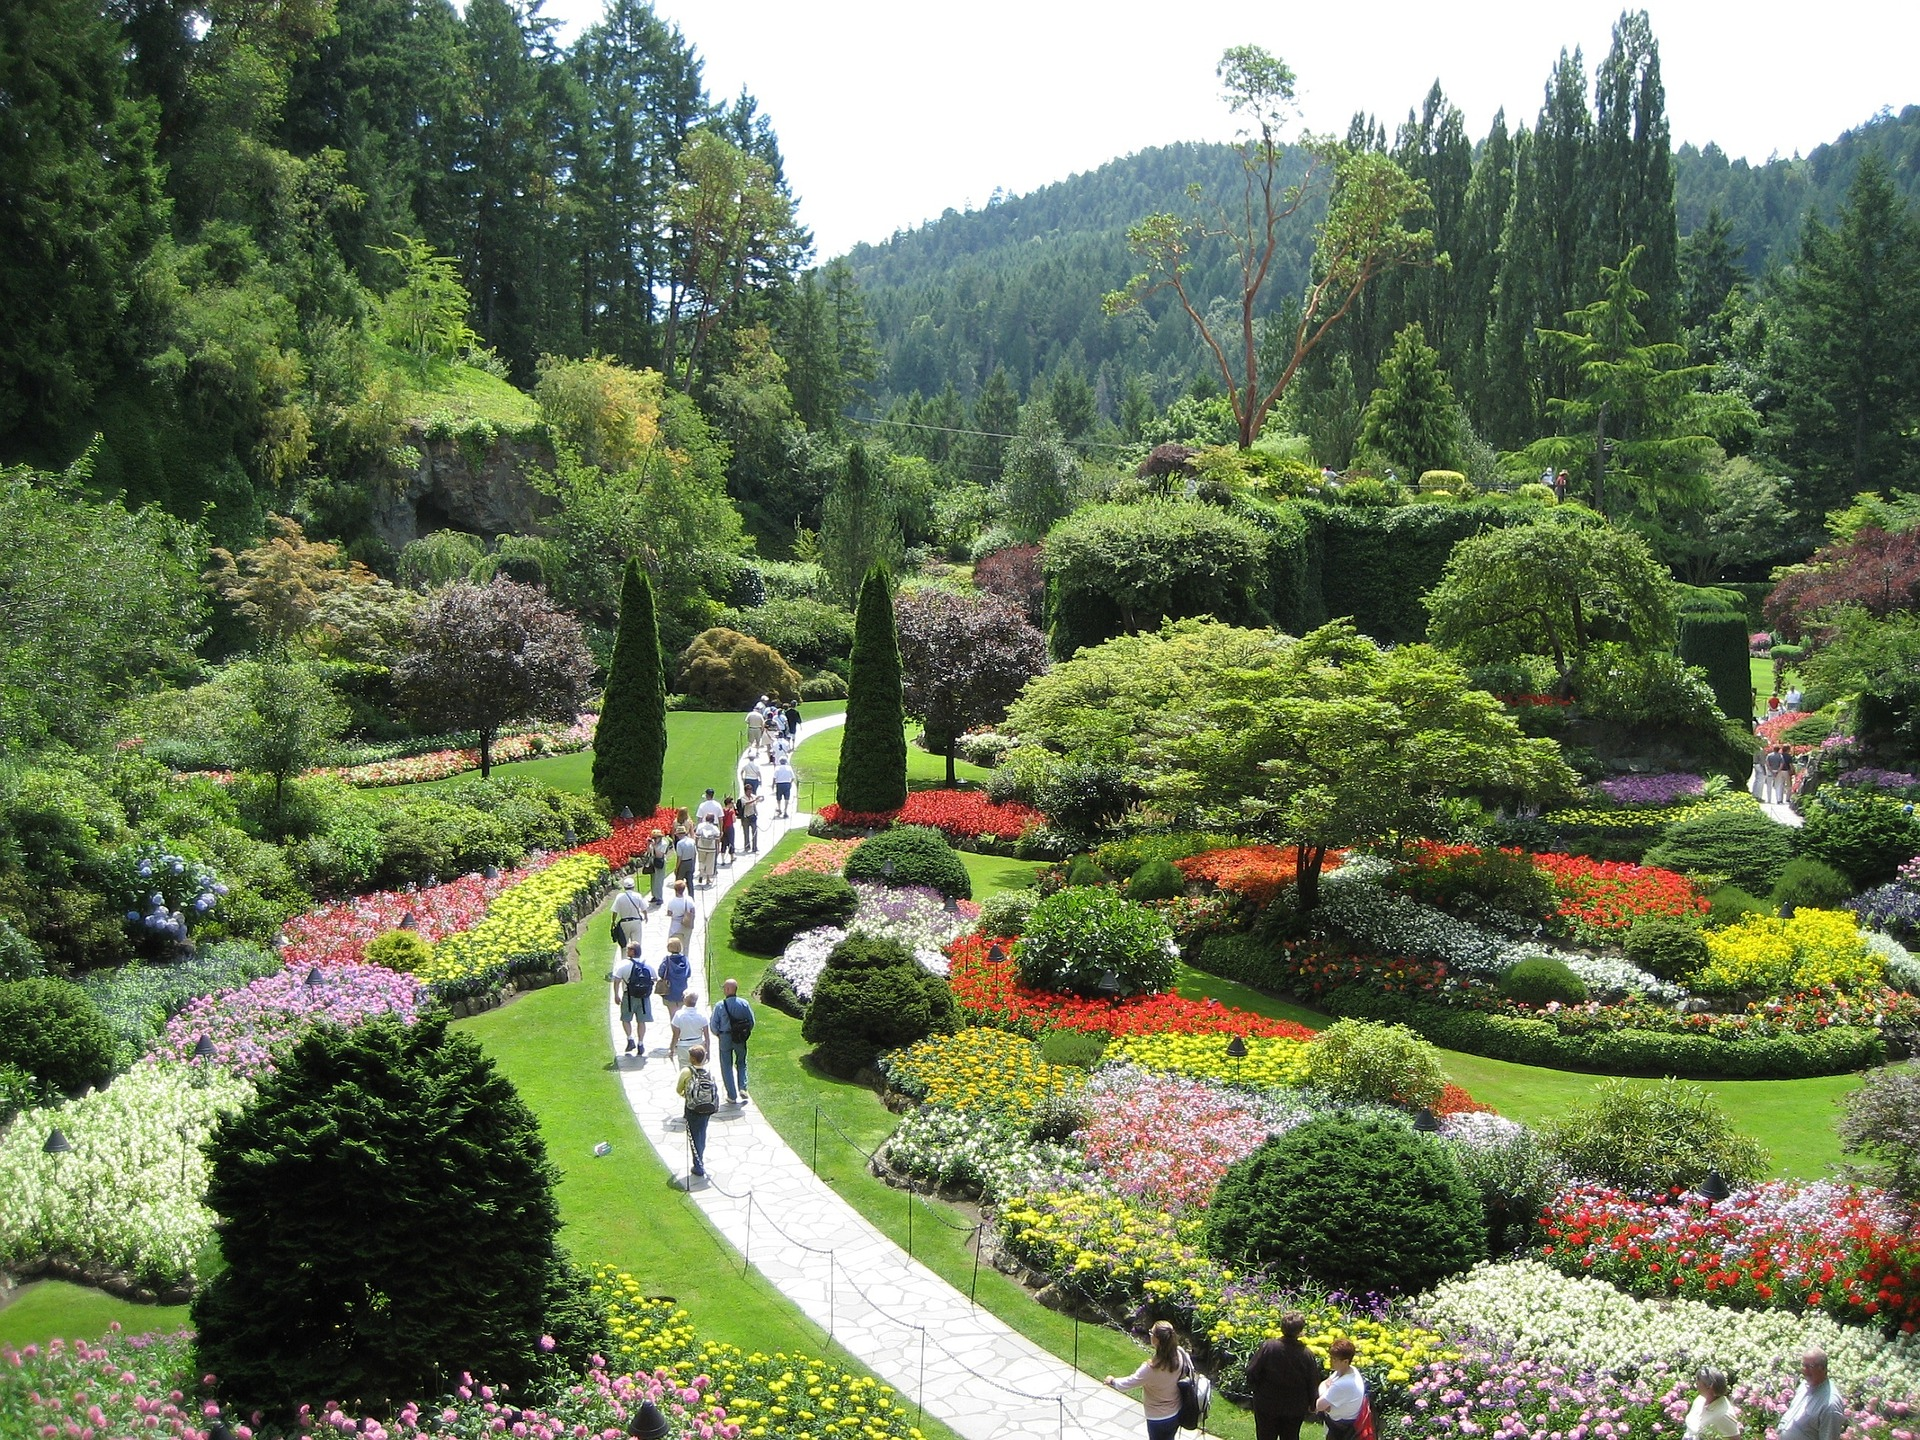 well maintained gardens with people walking the path